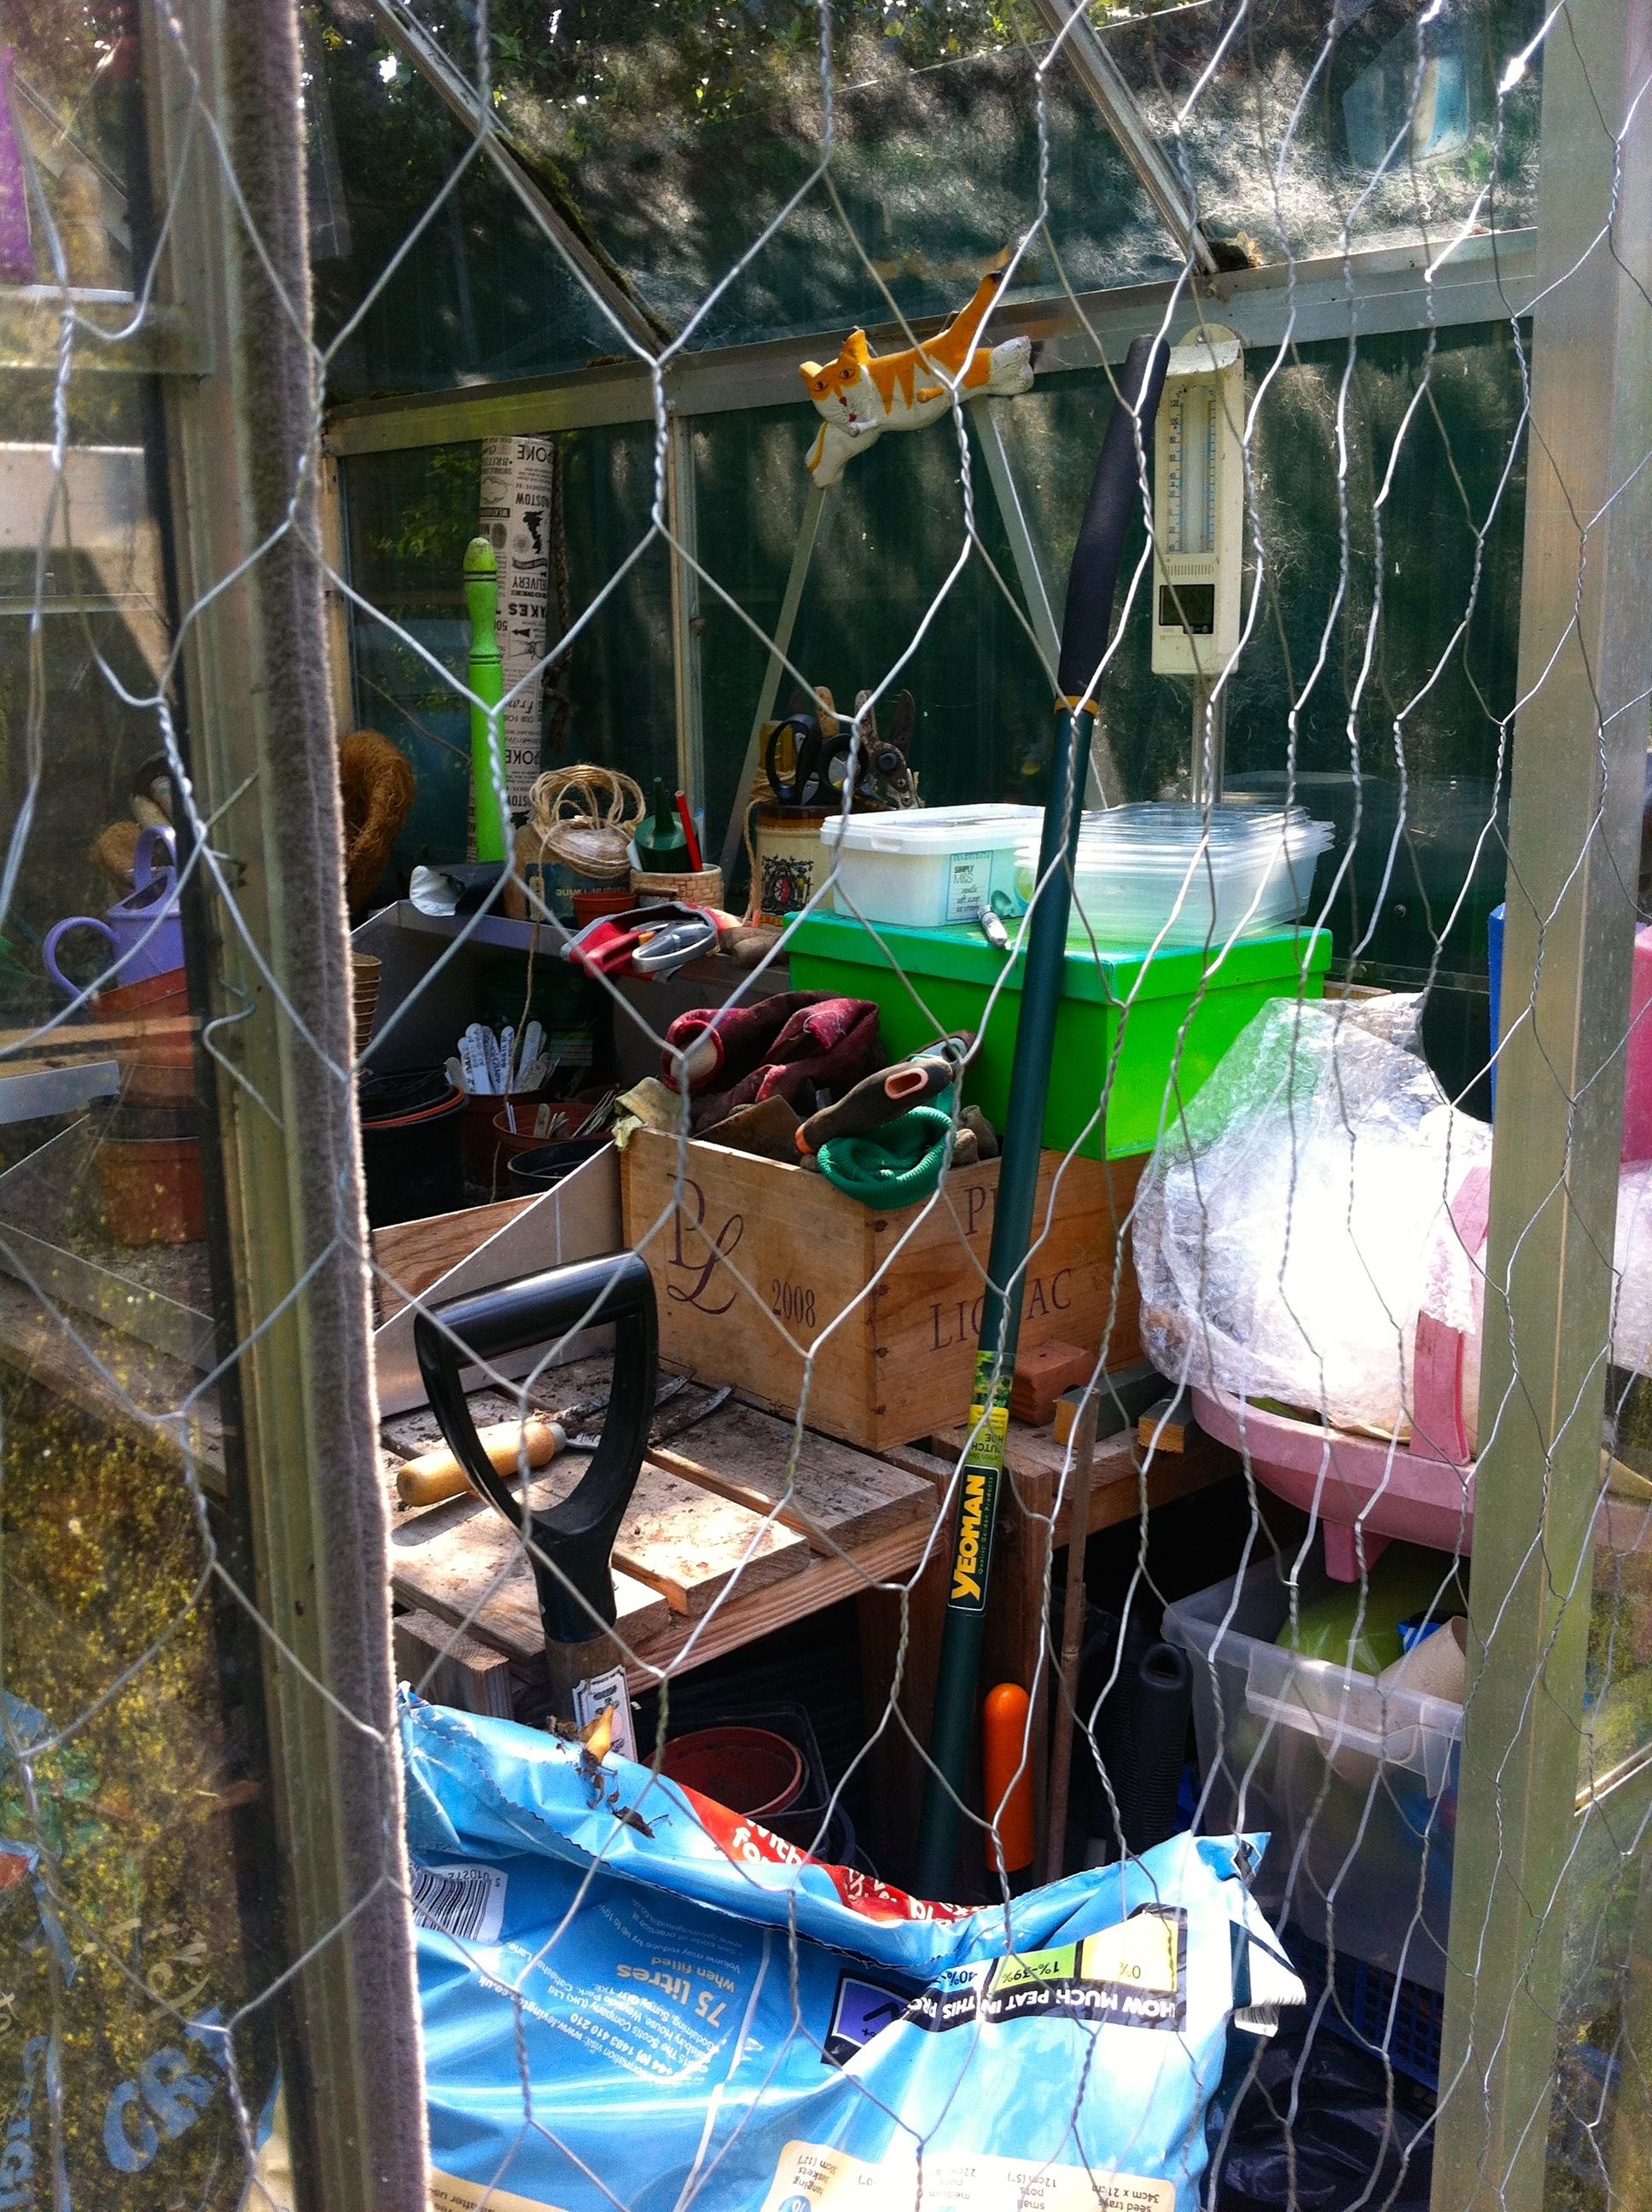 We were almost stumped as we tried to attach it to the top of the greenhouse door